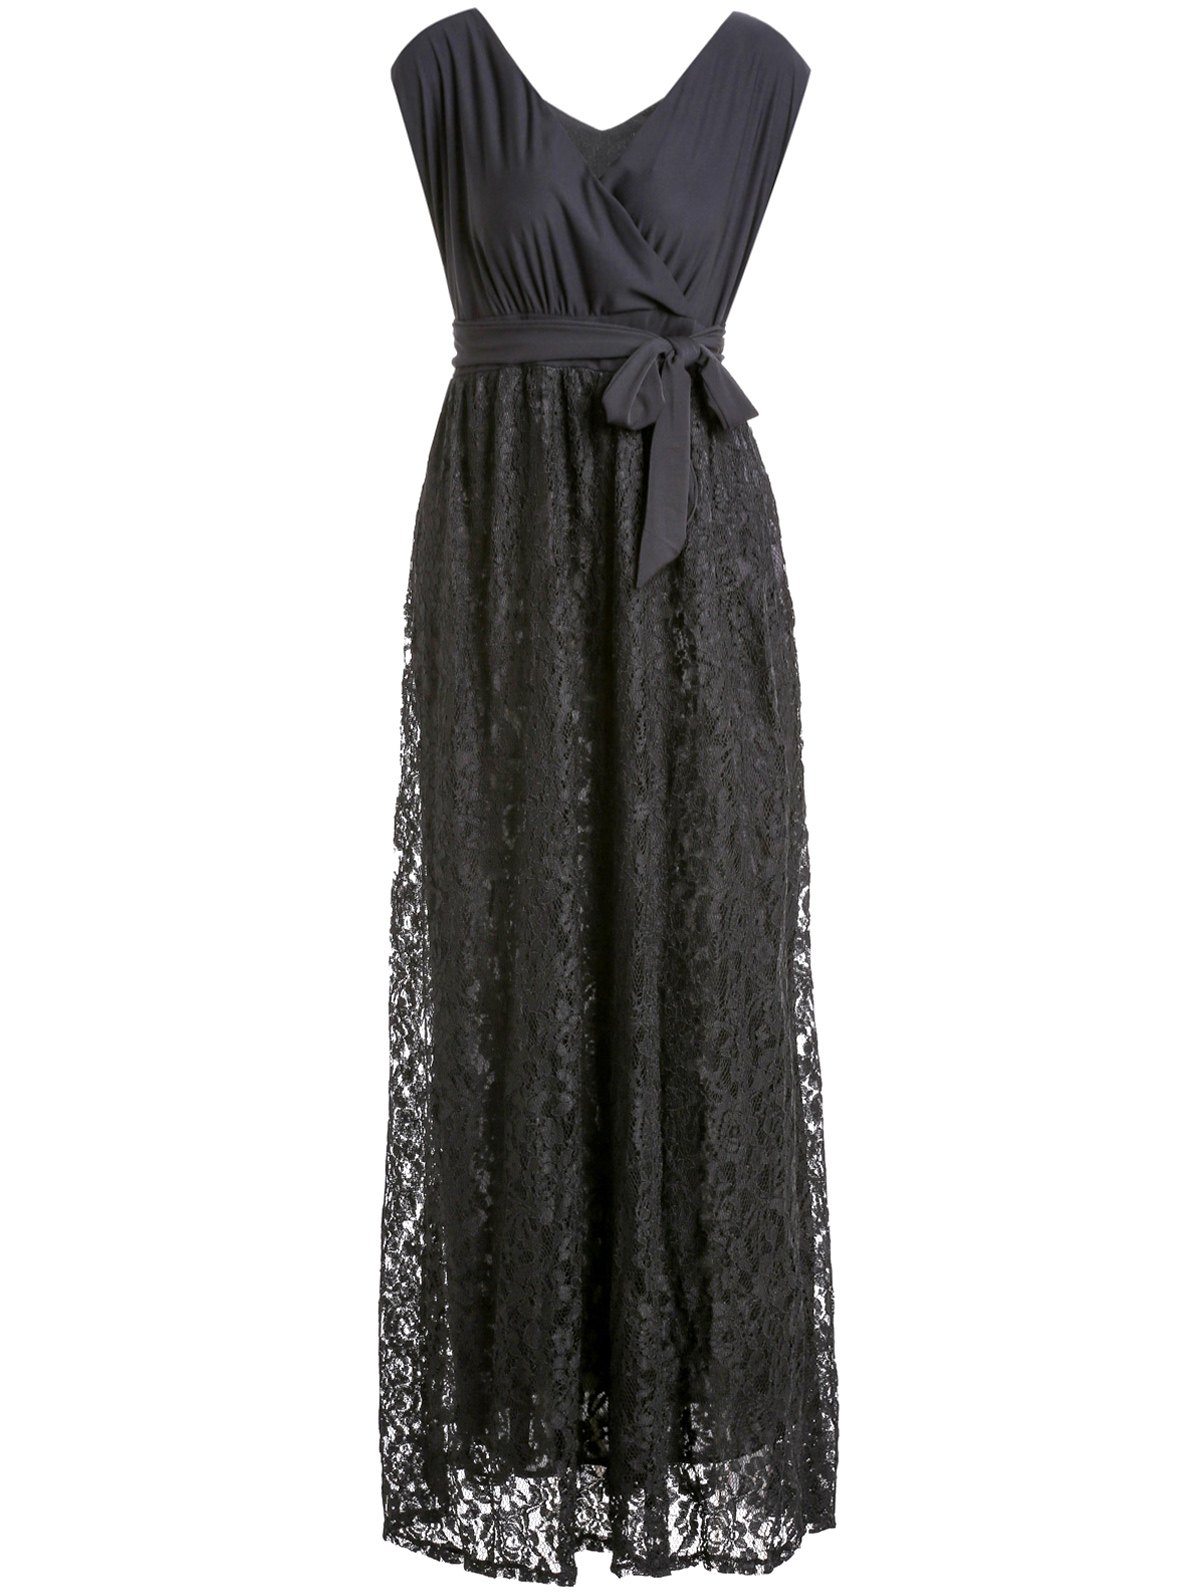 Black V-Neck Lace Spliced Sleeveless Dress For Women - BLACK 2XL